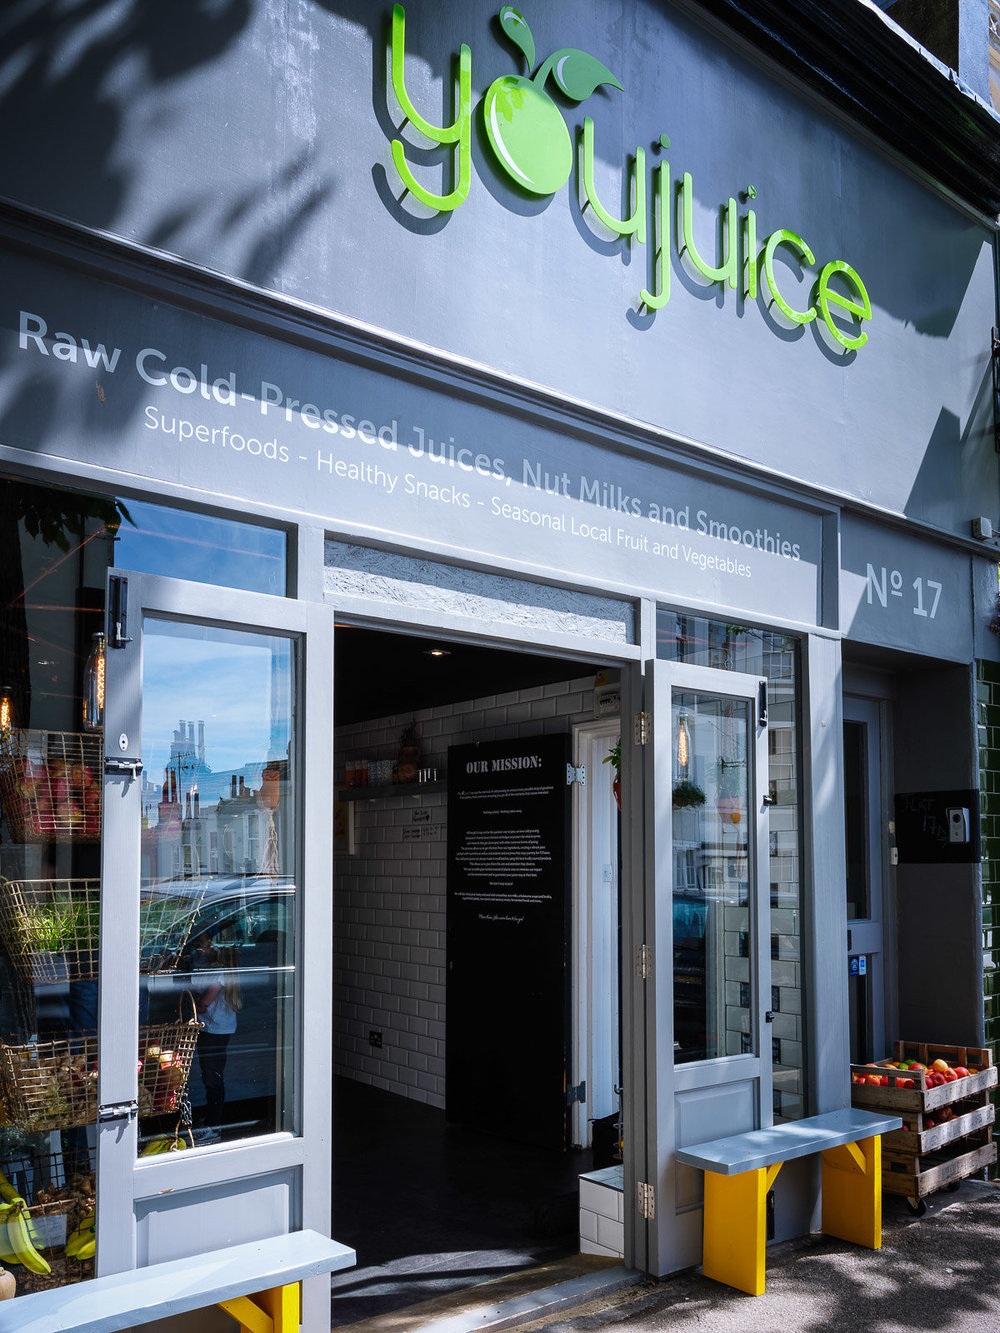 Youjuice_cold_pressed_juice_bar_brighton_01.jpg